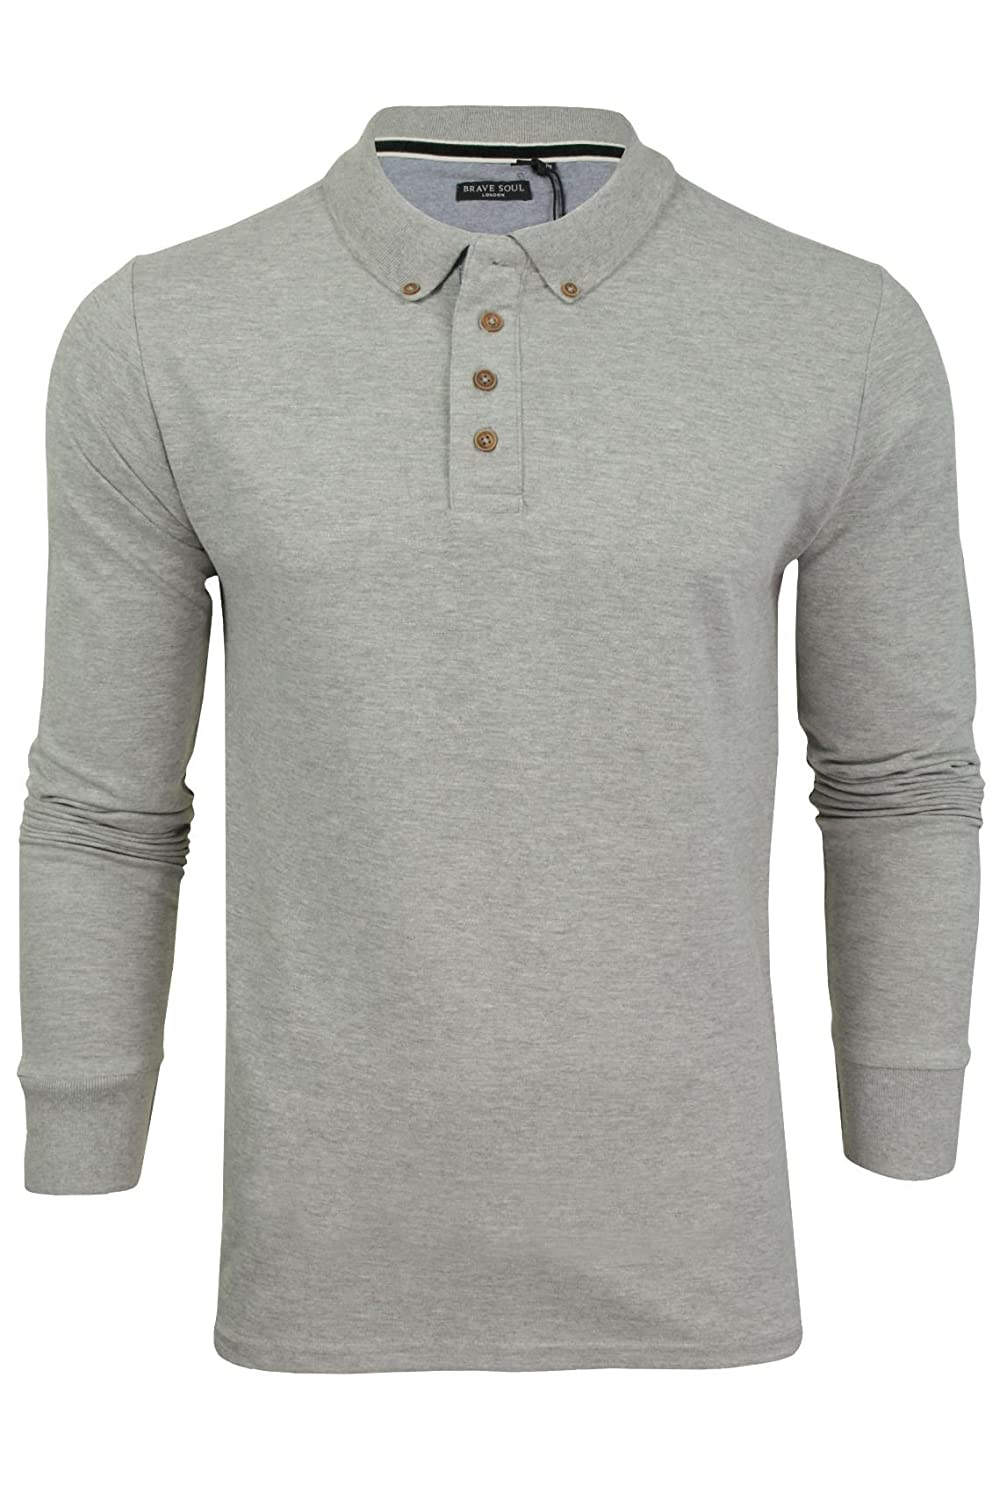 Mens Brave Soul Herae Collared Polo Long Sleeved Top Whispering Smith MLT-69 Kennedy